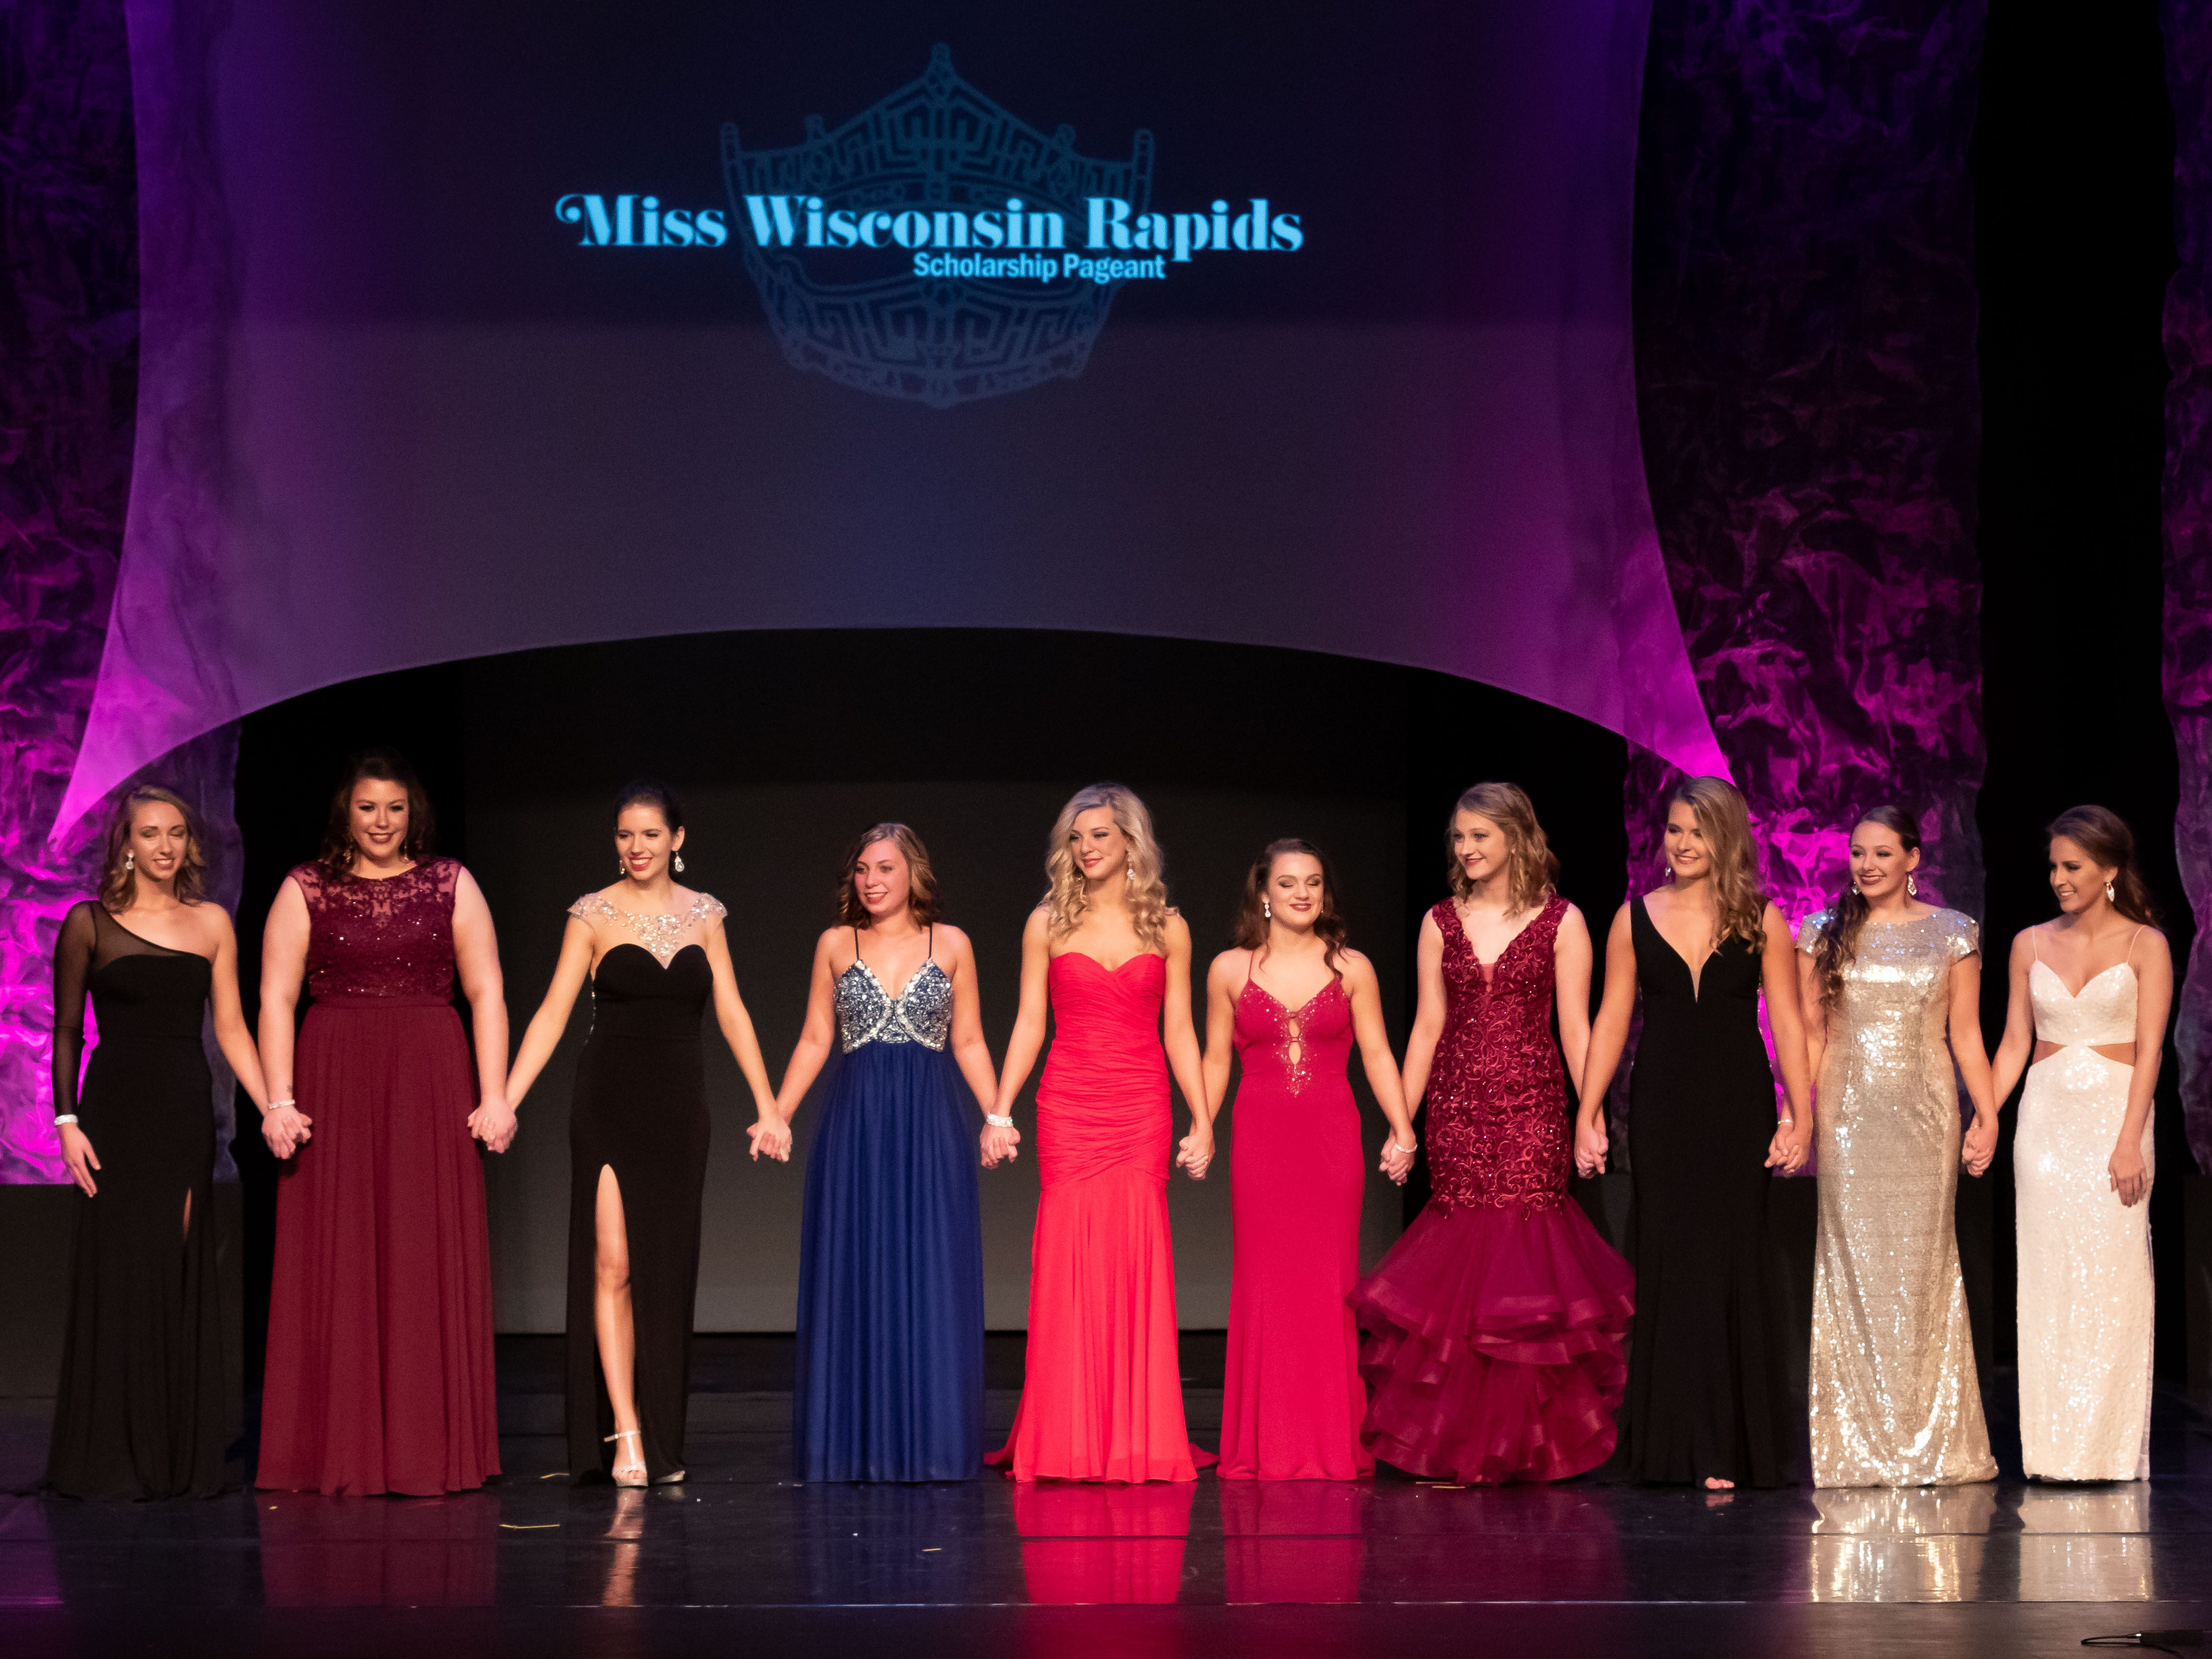 Contestants in the 2019 Miss Wisconsin Rapids Area Scholarship Pageant await the final results on Saturday, Oct. 27, 2018, at the Performing Arts Center of Wisconsin Rapids.